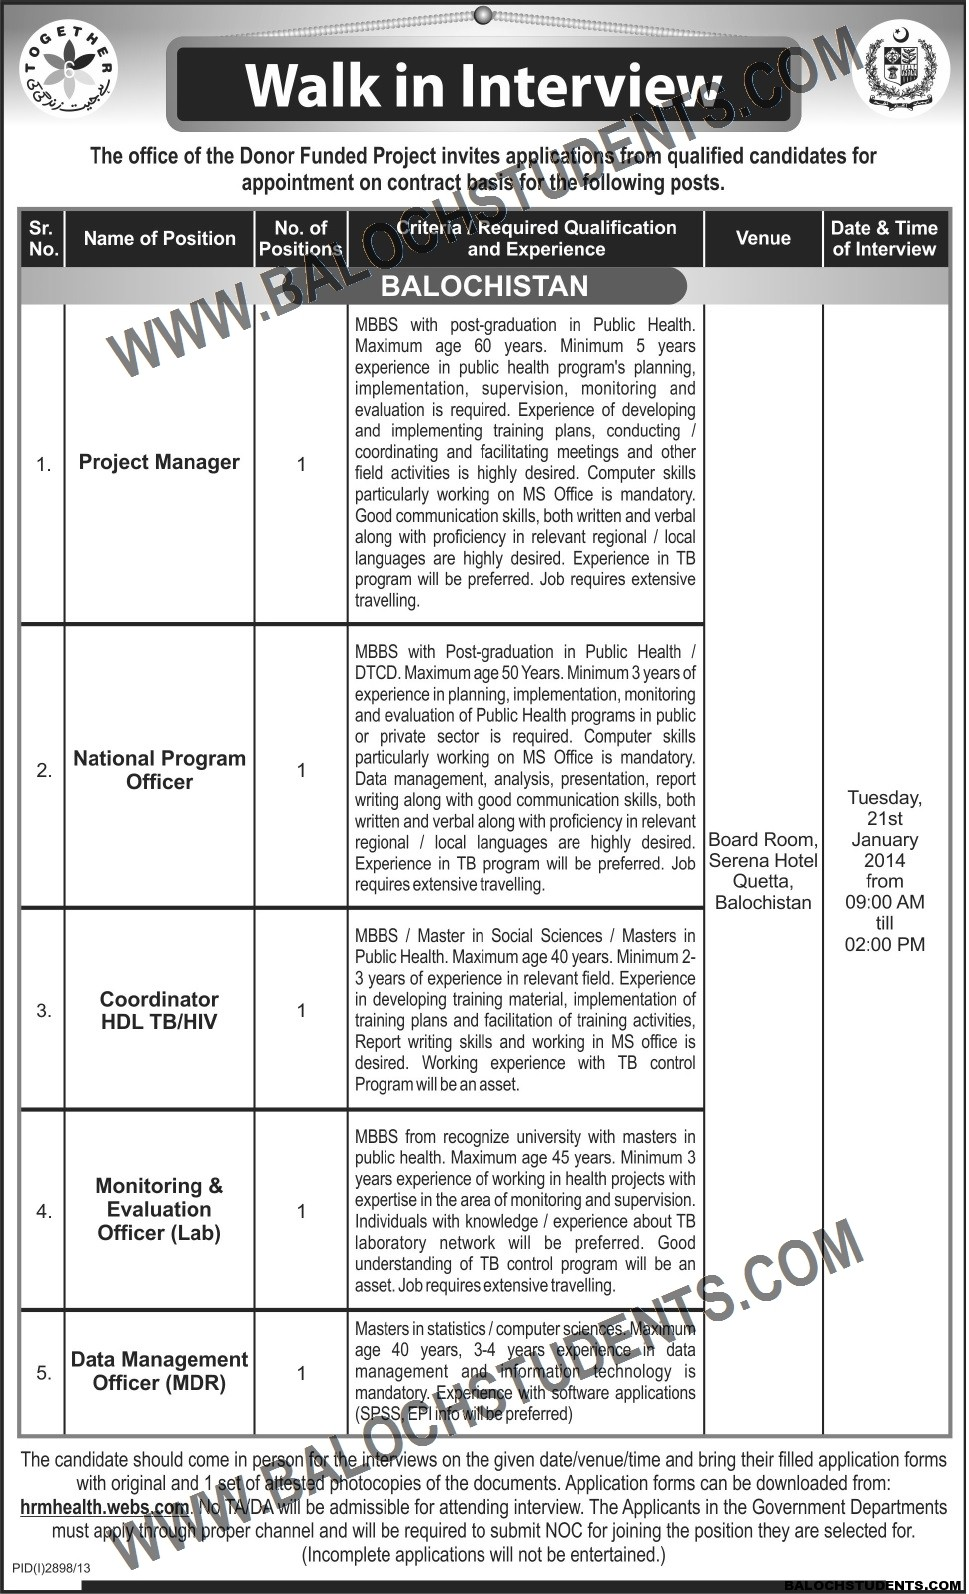 Walk in Interview- The Office of the Donor Funded Project, Balochistan